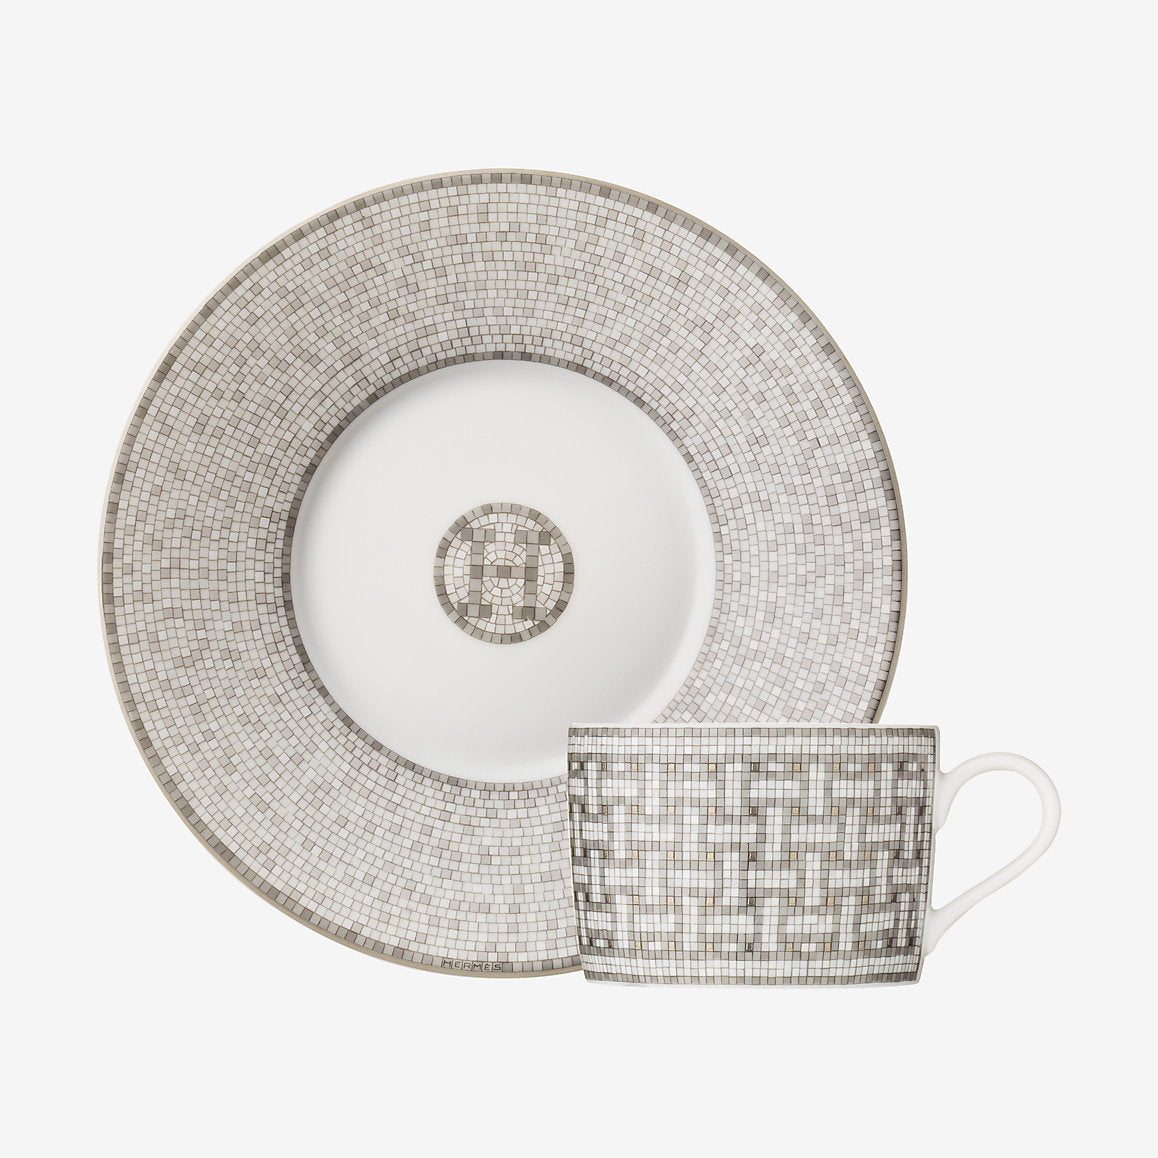 Mosaique au 24 Platinum Tea Cup and Saucer- CALL 212-257-5655 TO ORDER